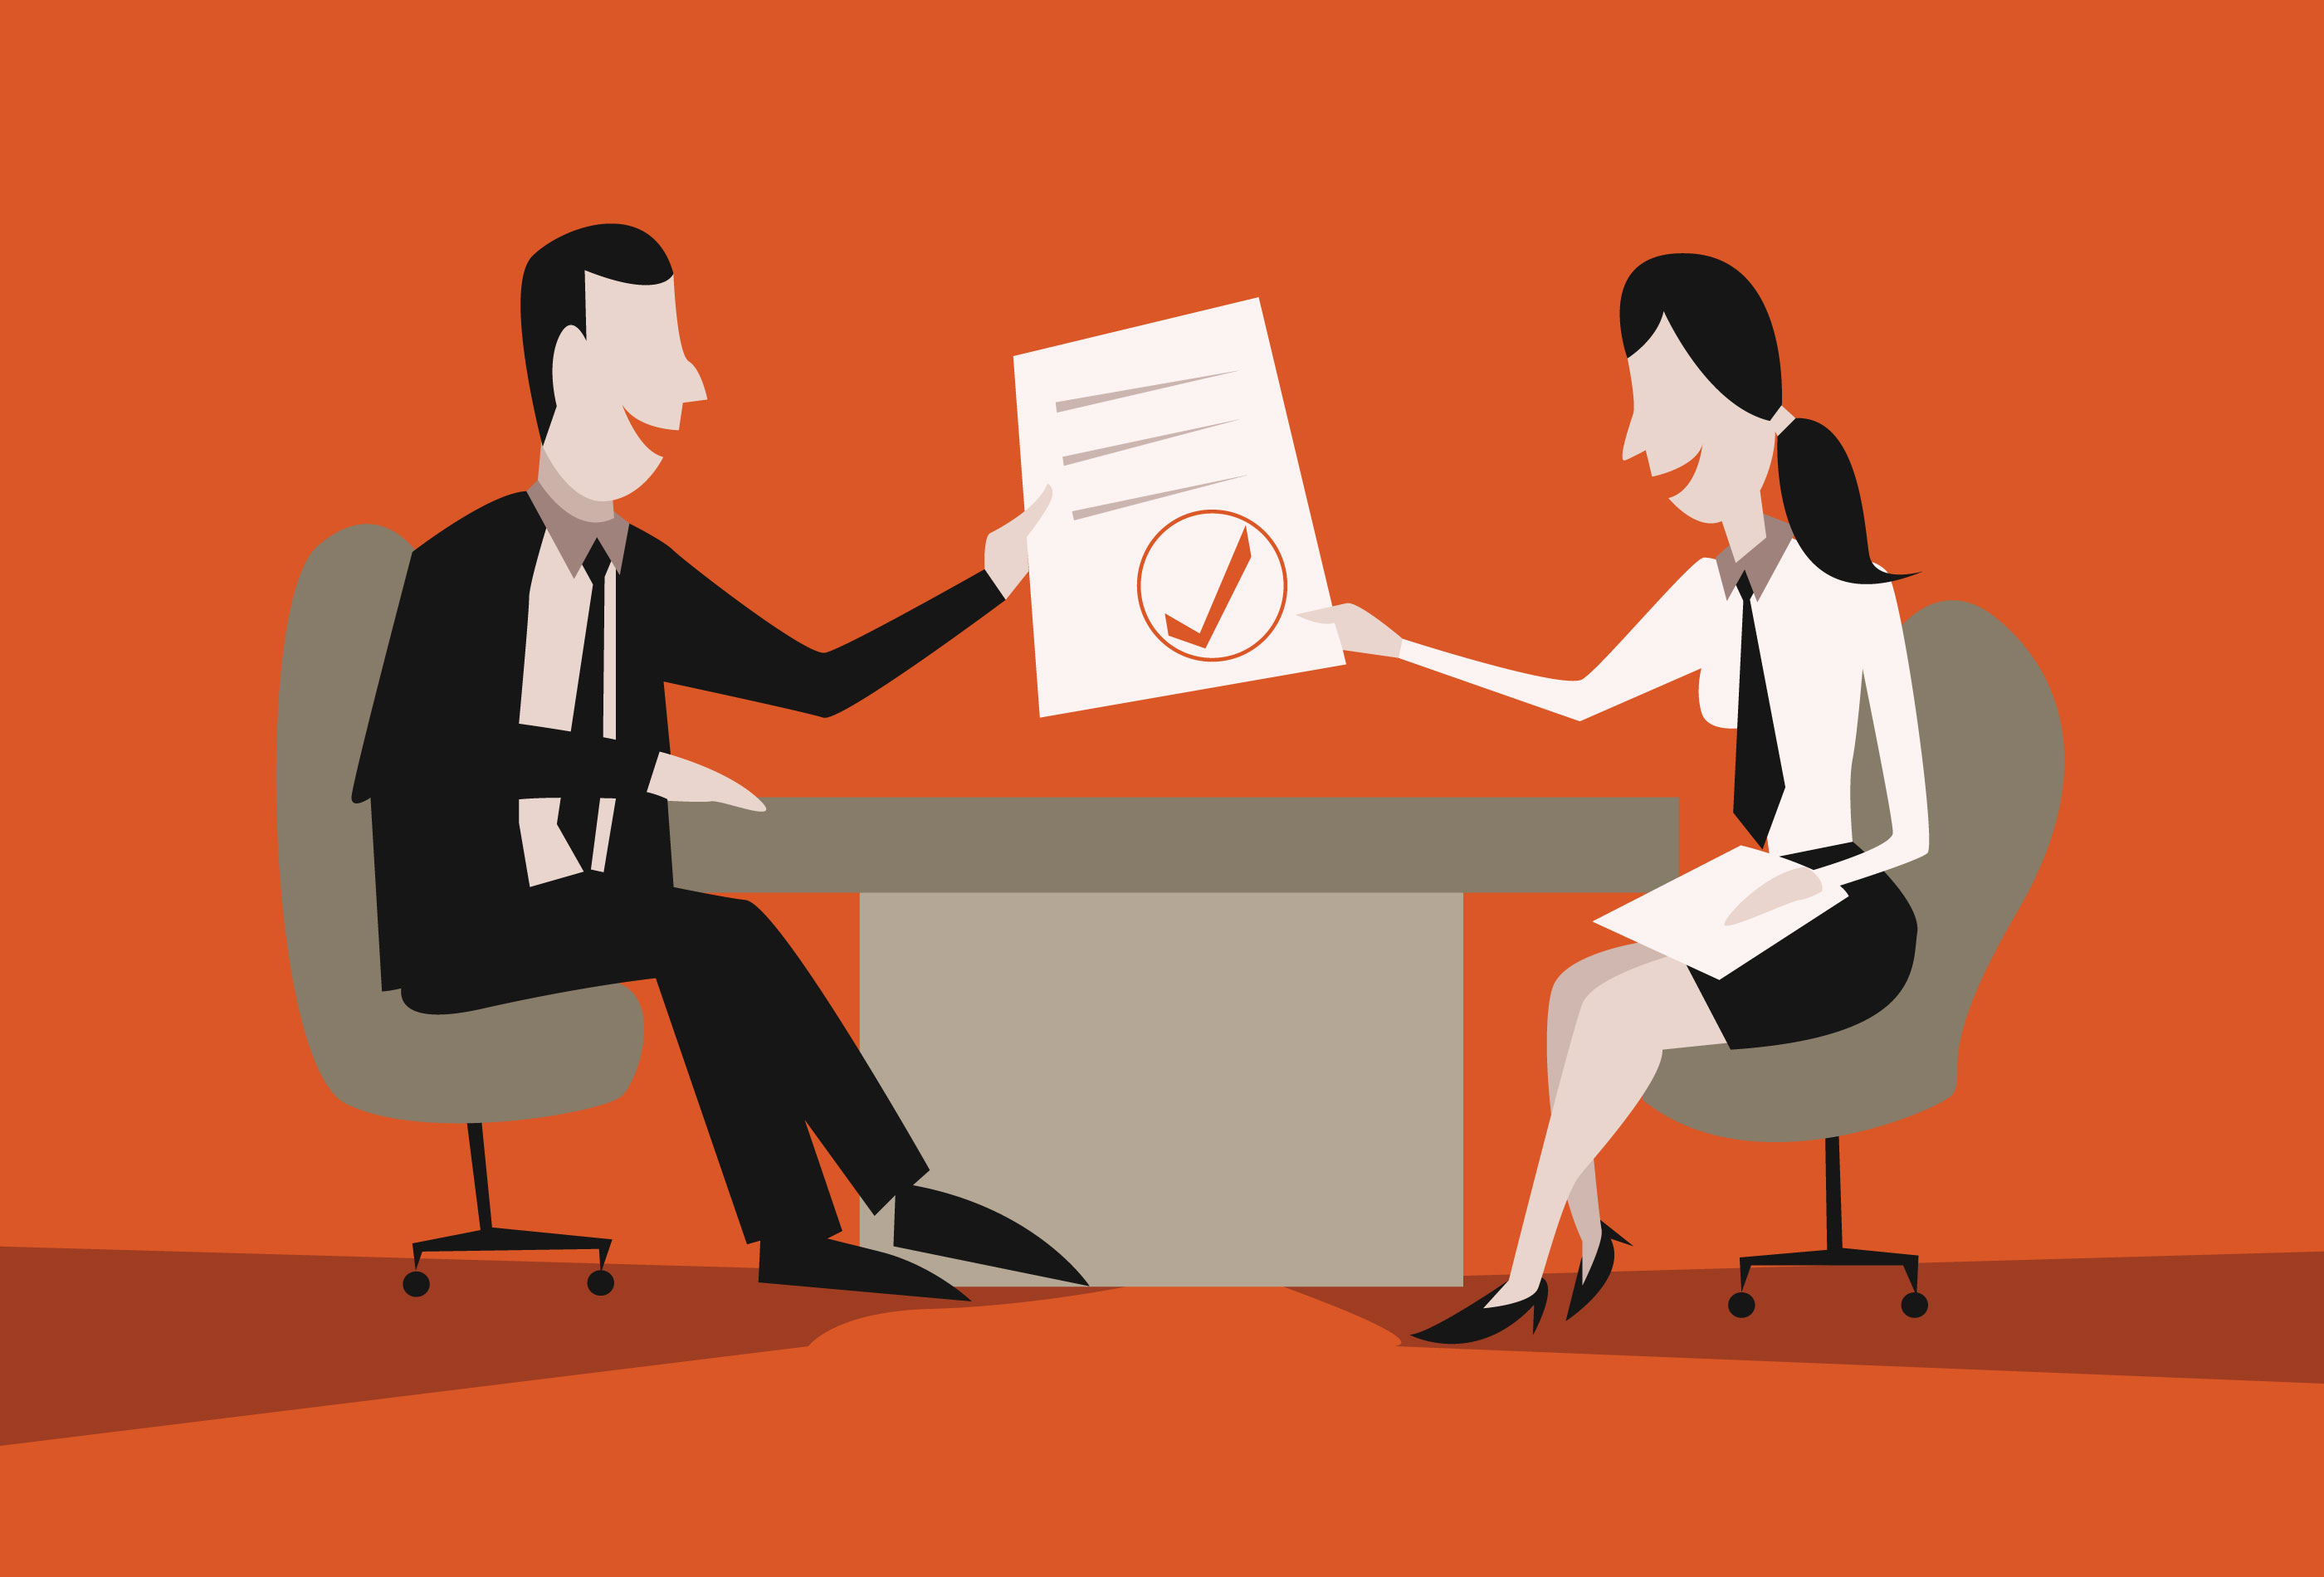 Tips on interview performance